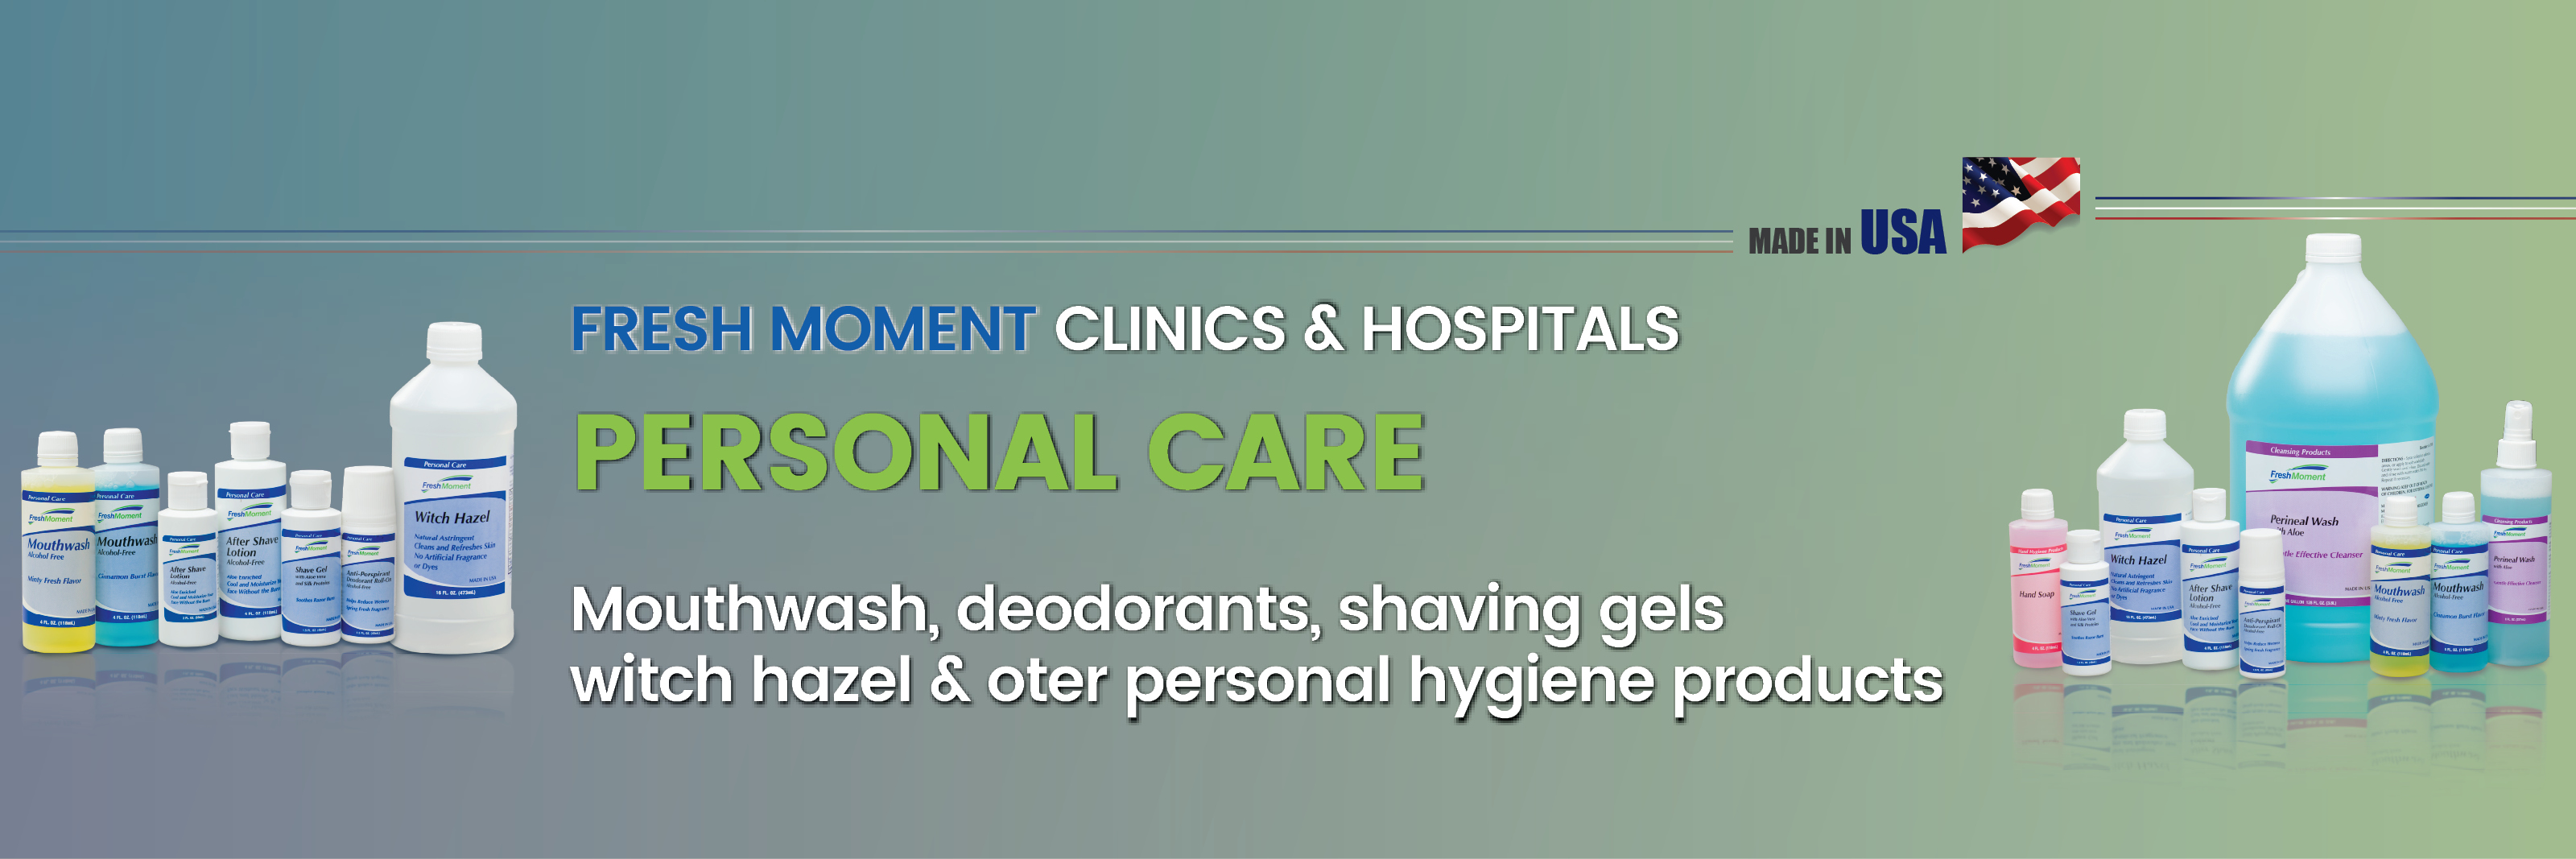 Fresh Moment Personal Care